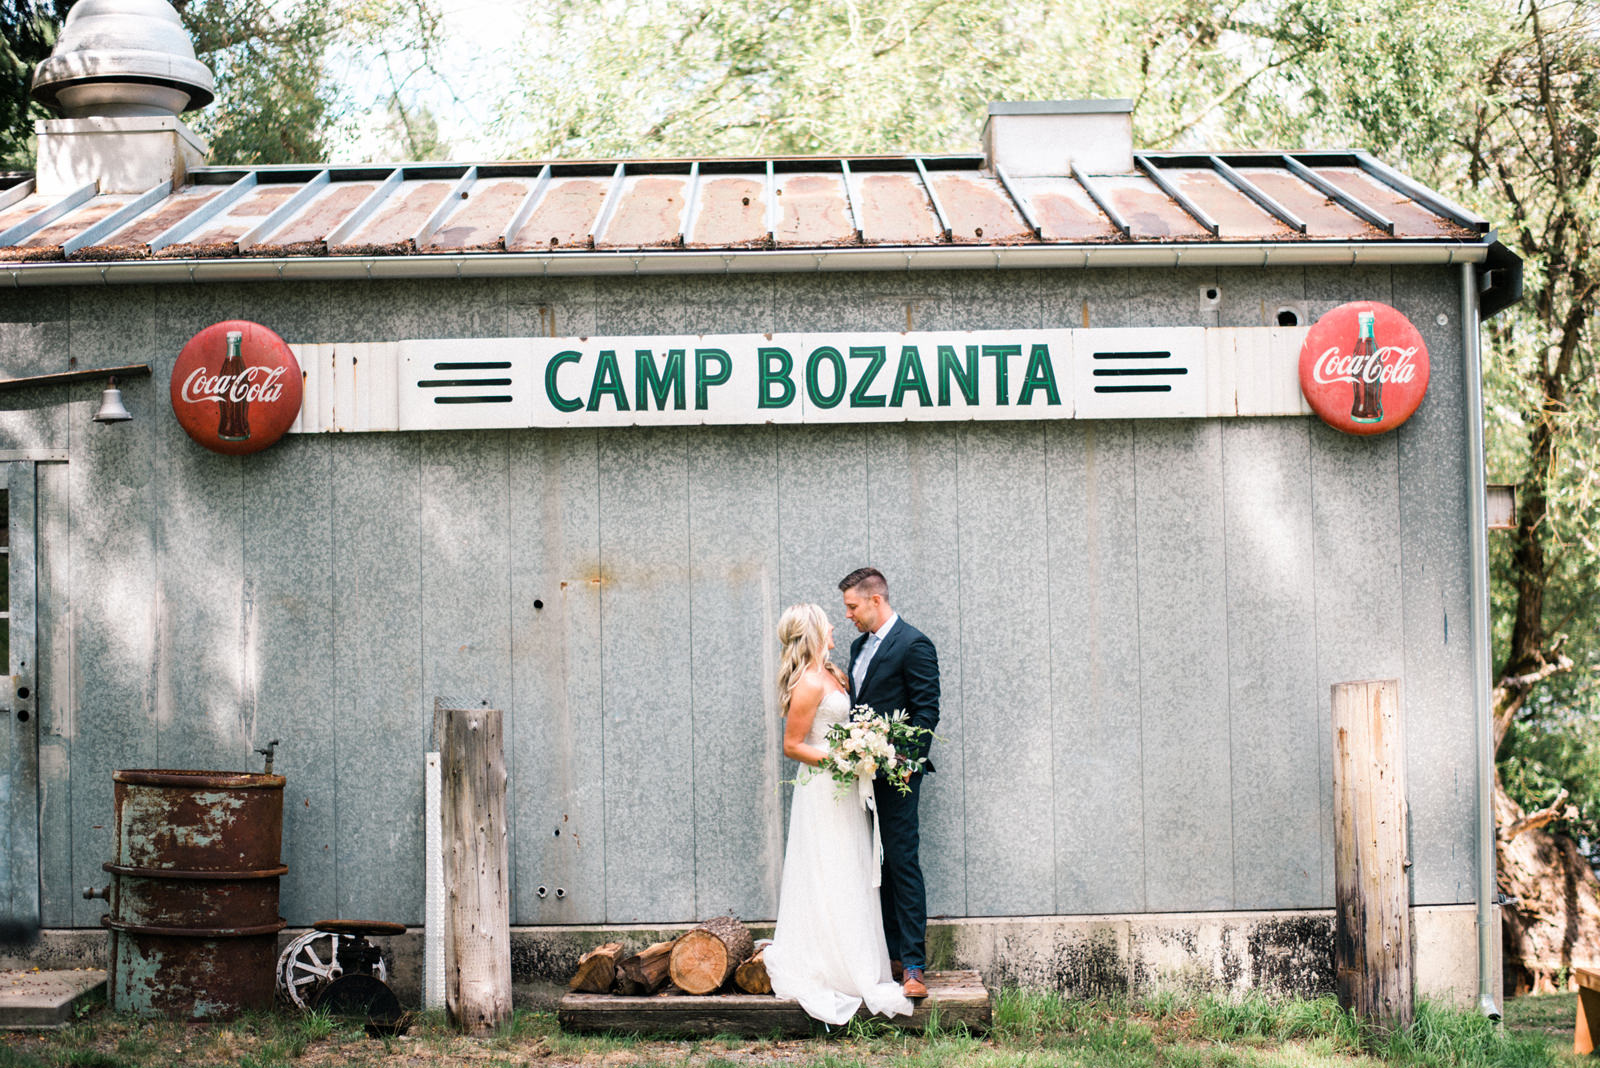 219-hayden-lake-wedding-with-vintage-camp-signs-from-idaho-film-photographer-ryan-flynn.jpg